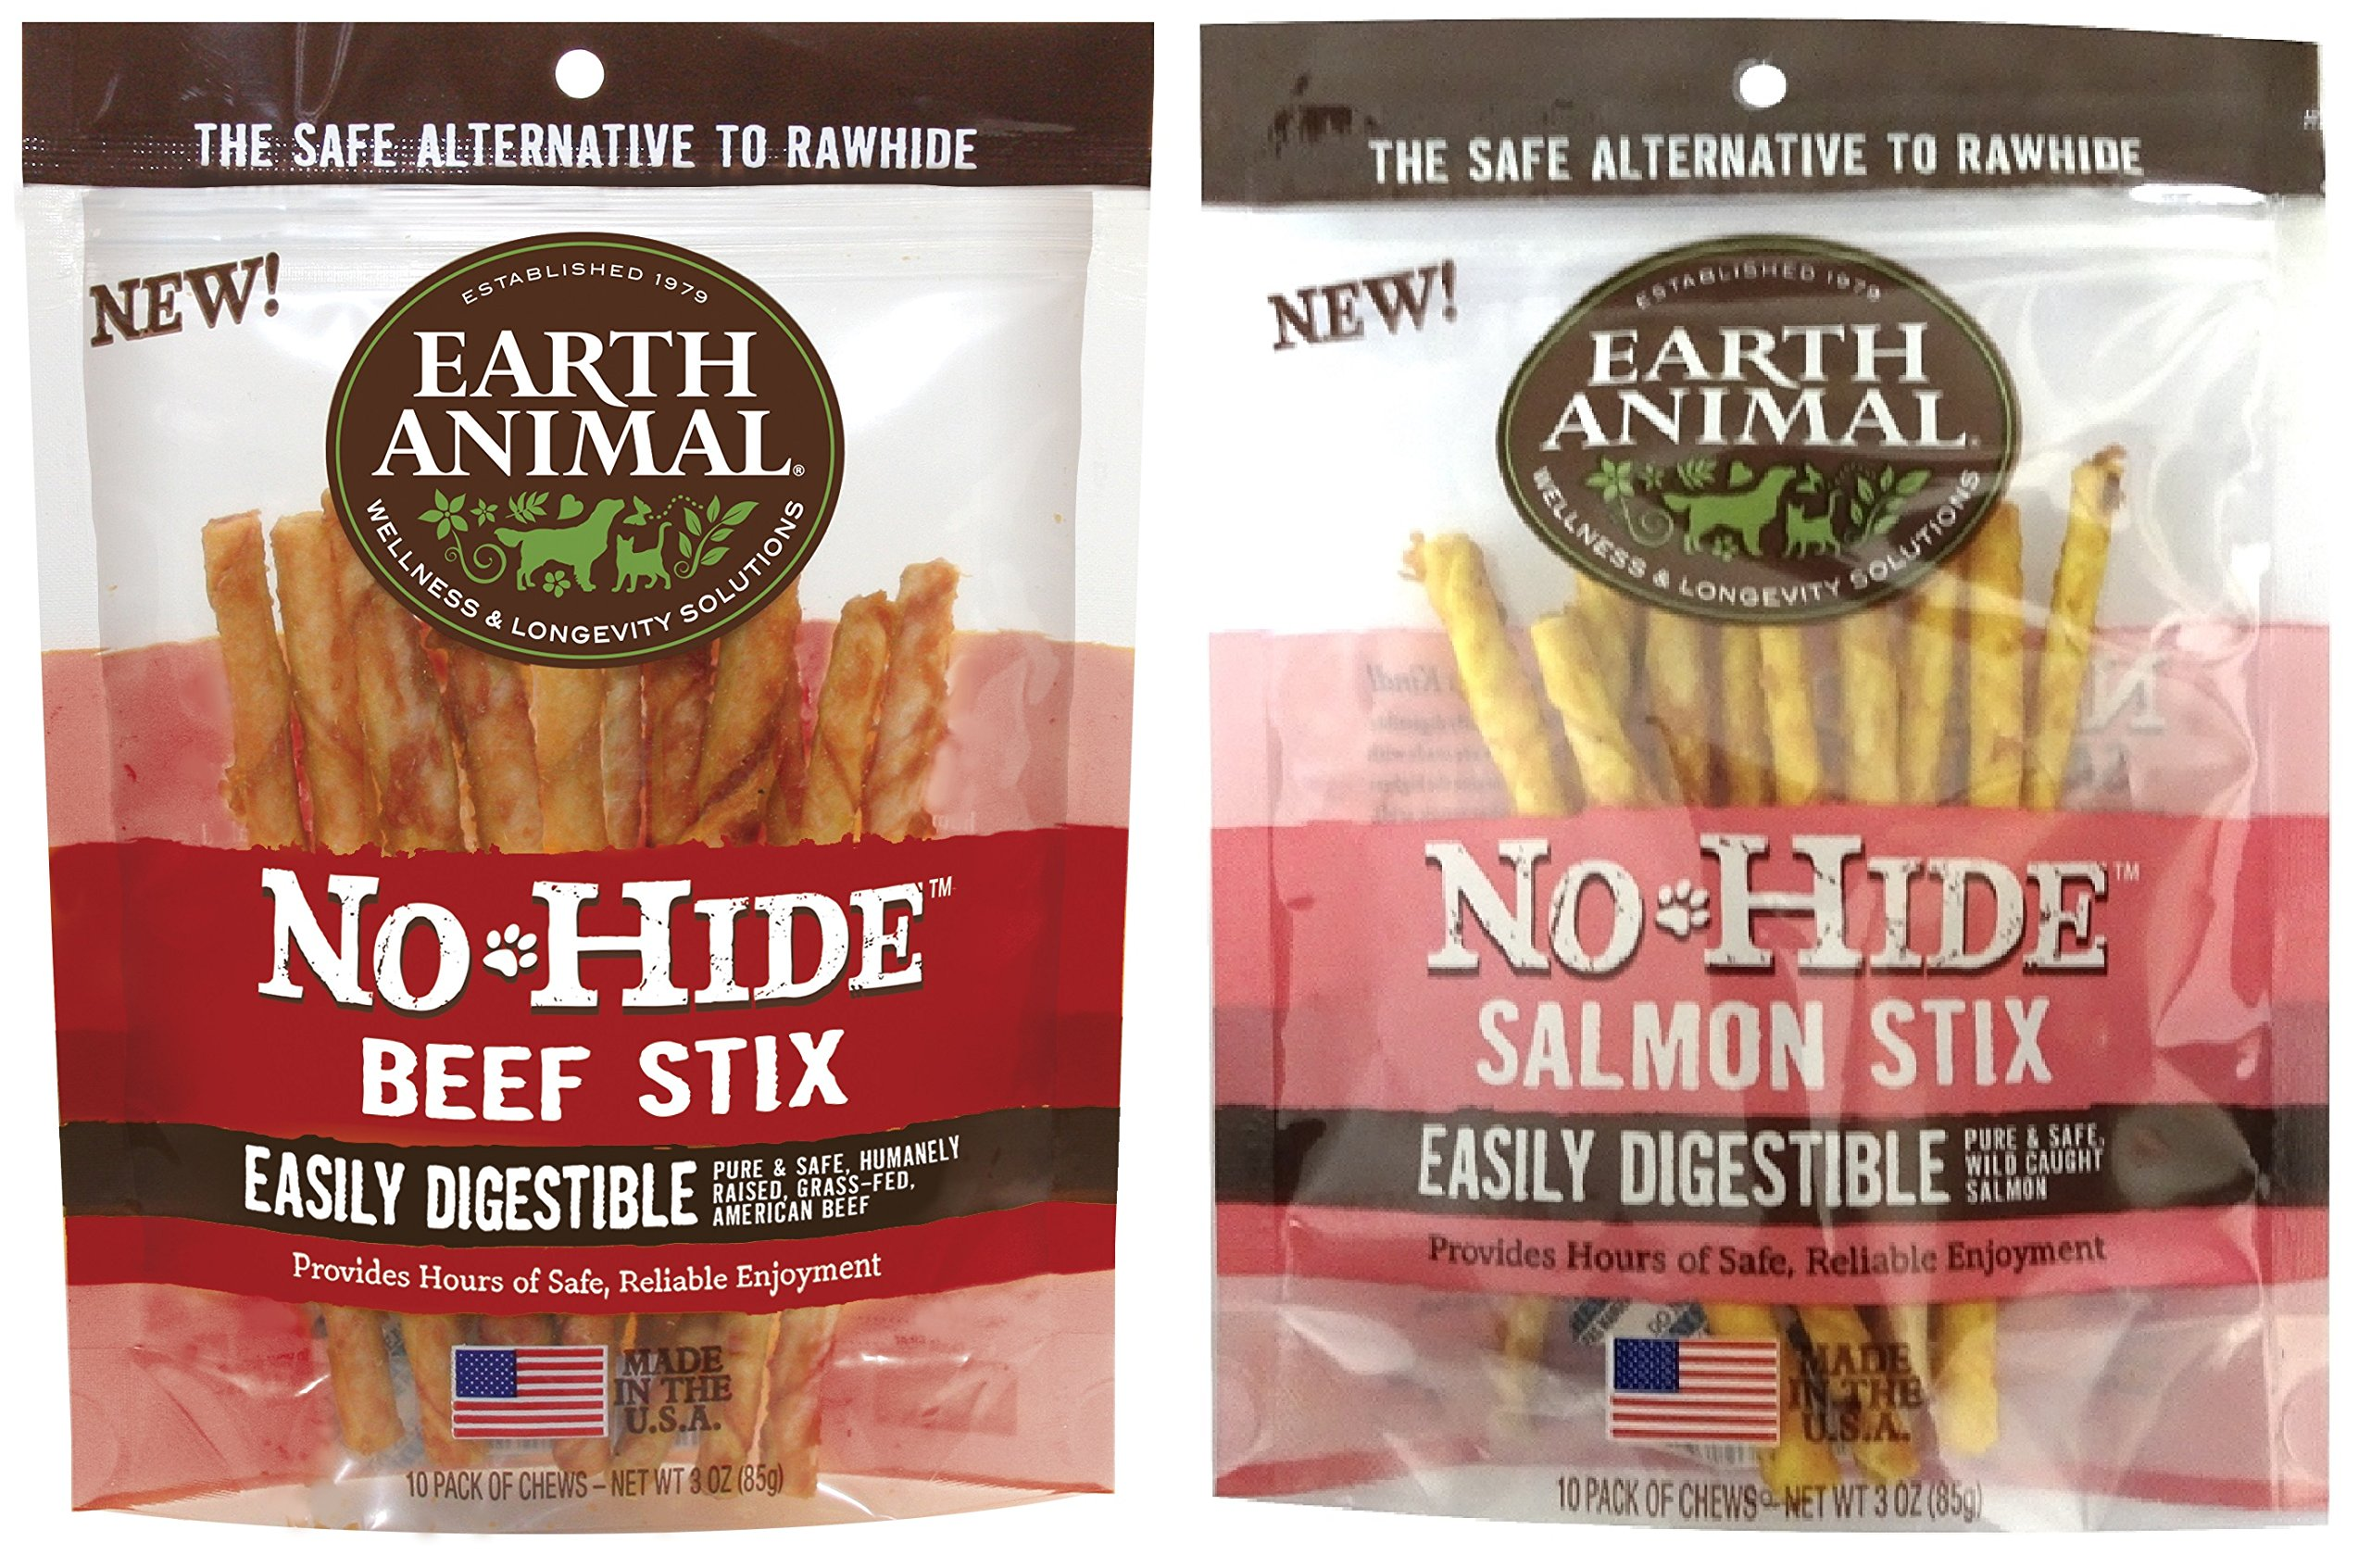 (2pc Combo Pack) Earth Animal No-Hide Beef Stix, 10ct (Beef) and Earth Animal No-Hide Salmon Stix, 10ct.